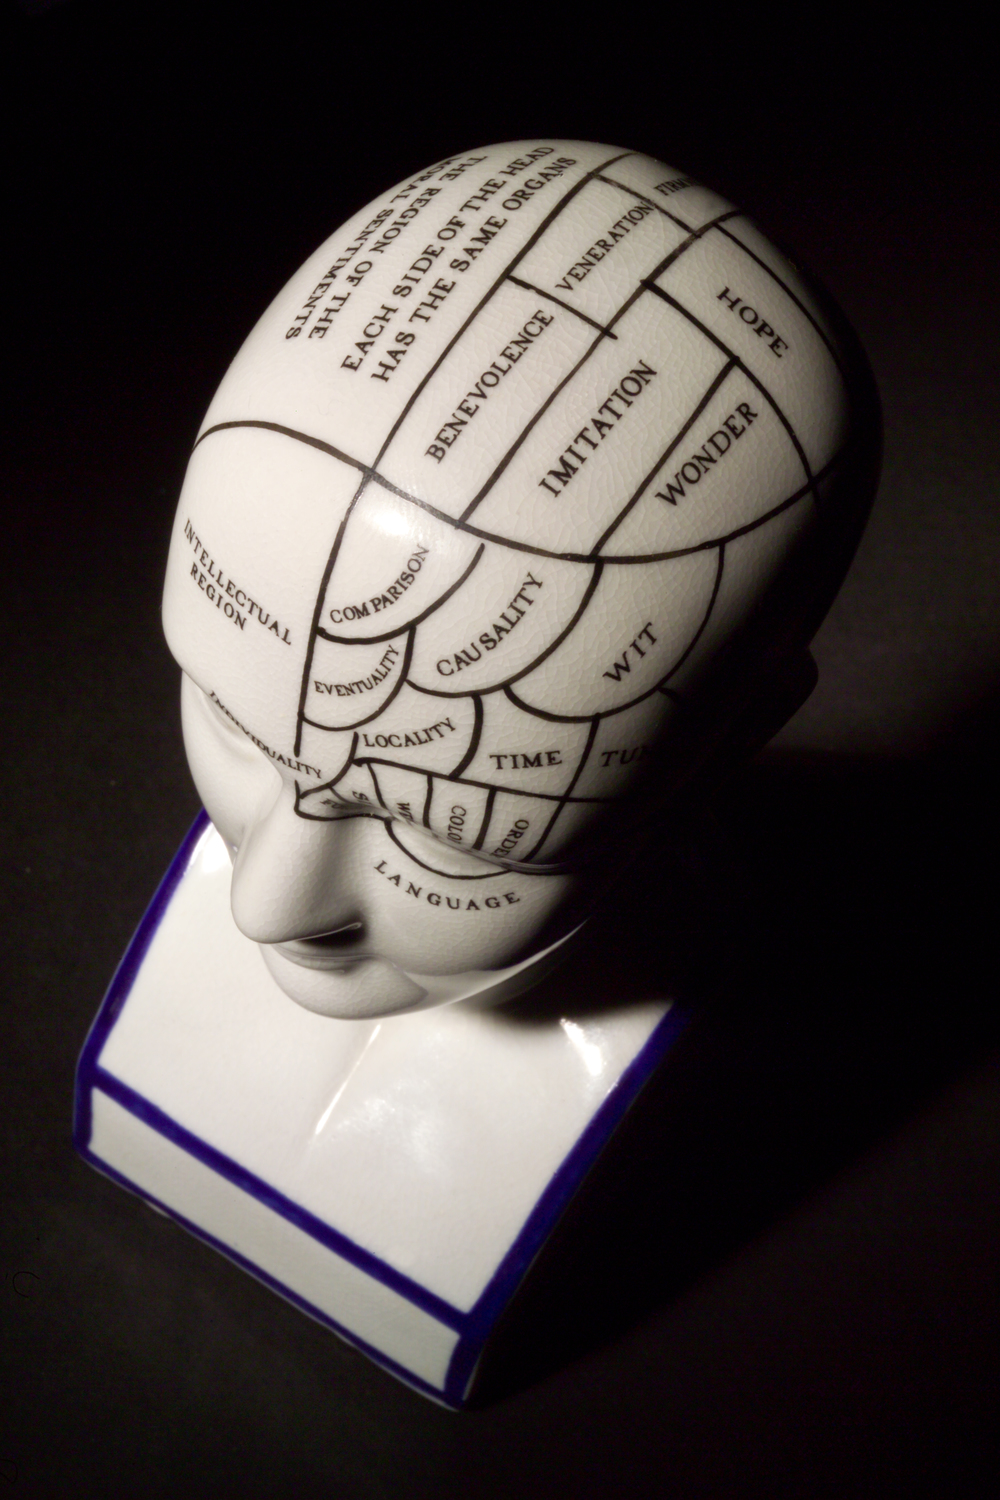 Phrenology head, a search for the cause of mental illness. Depicts areas of brain where each emotion, trait, and faculty lay: if certain area of the brain was larger, this meant the individual had more of that trait.